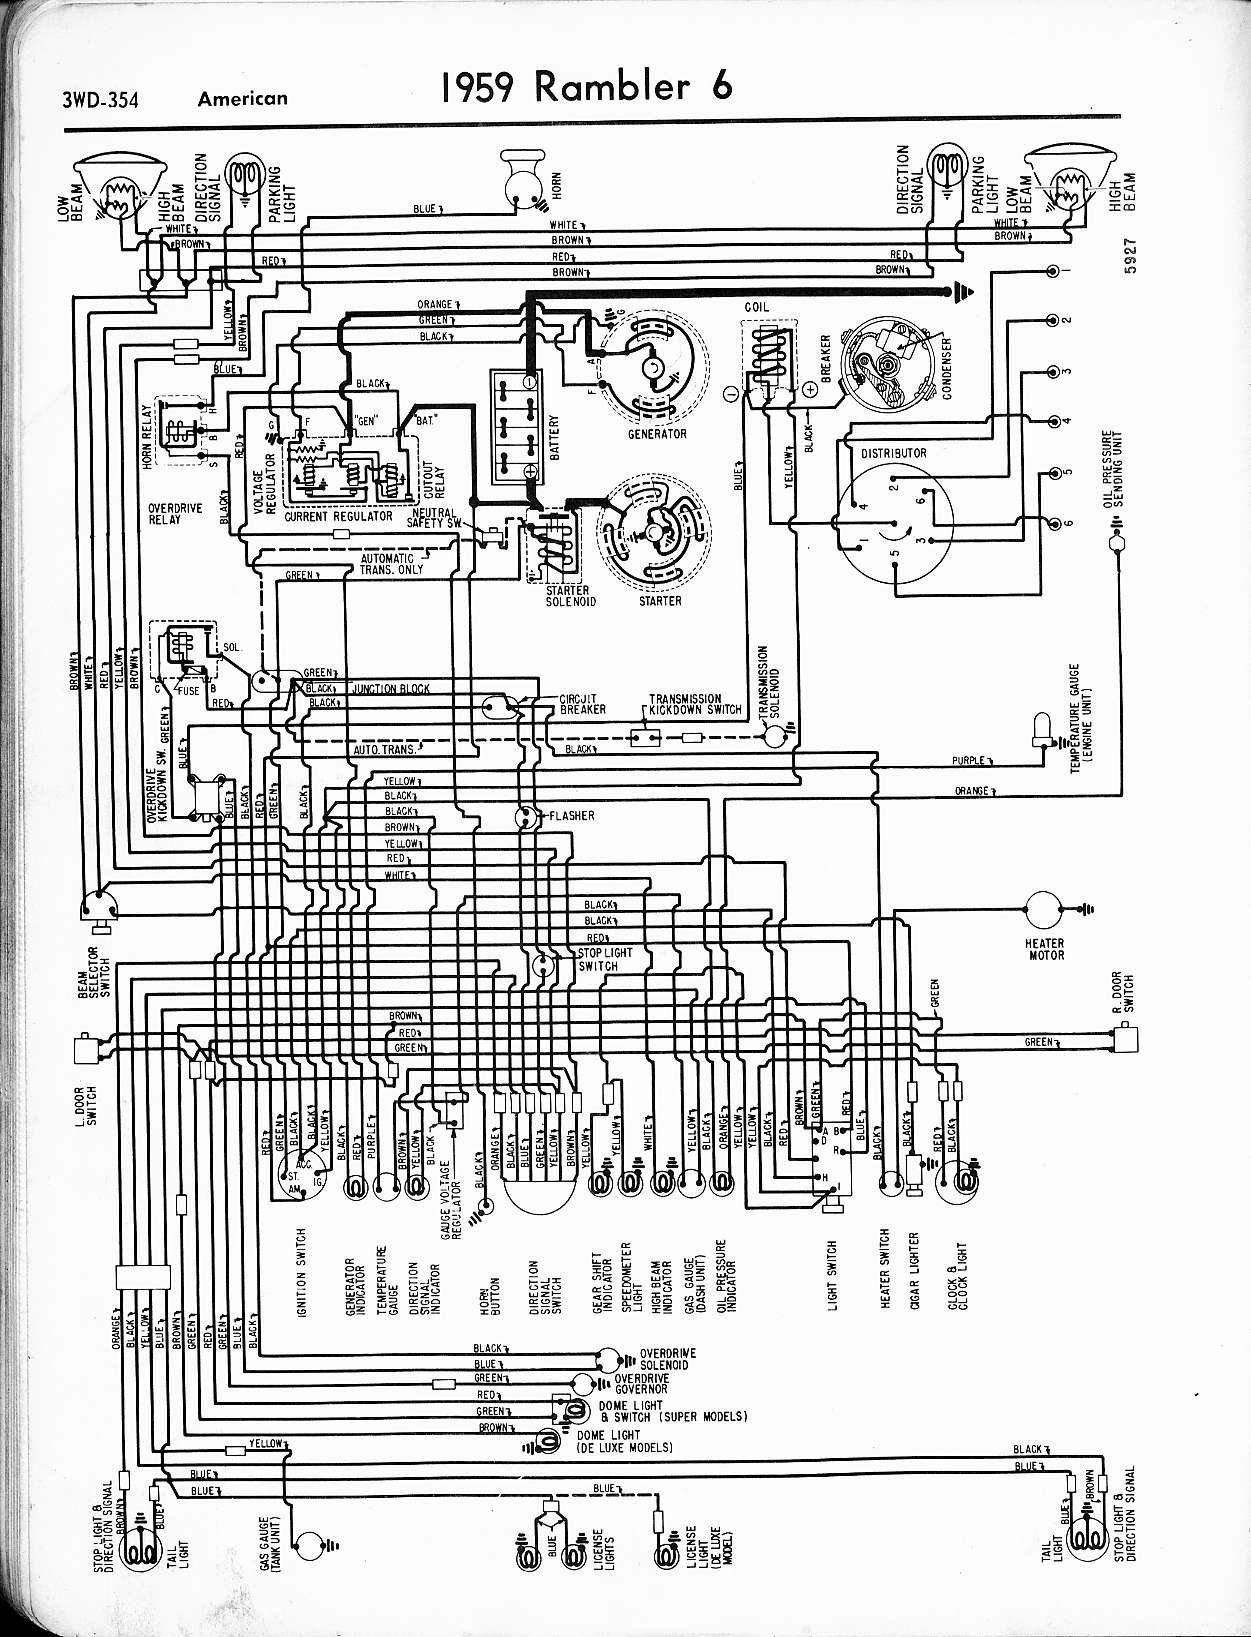 MWire5765 354 rambler wiring diagrams the old car manual project 1971 AMC Javelin at crackthecode.co